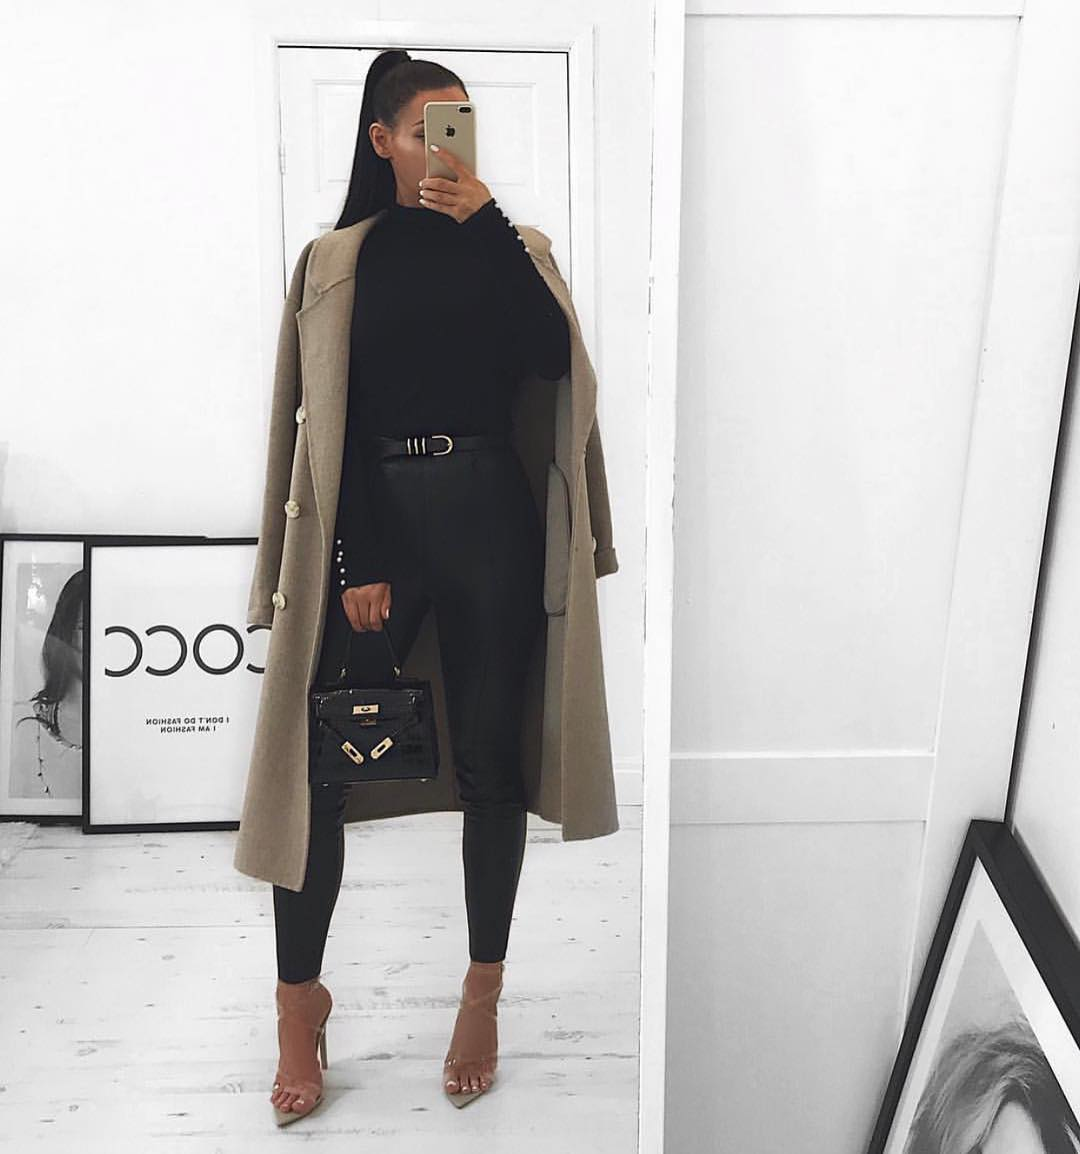 Khaki Camel Coat With Black Sweater And Black Leather Pants For Fall 2019